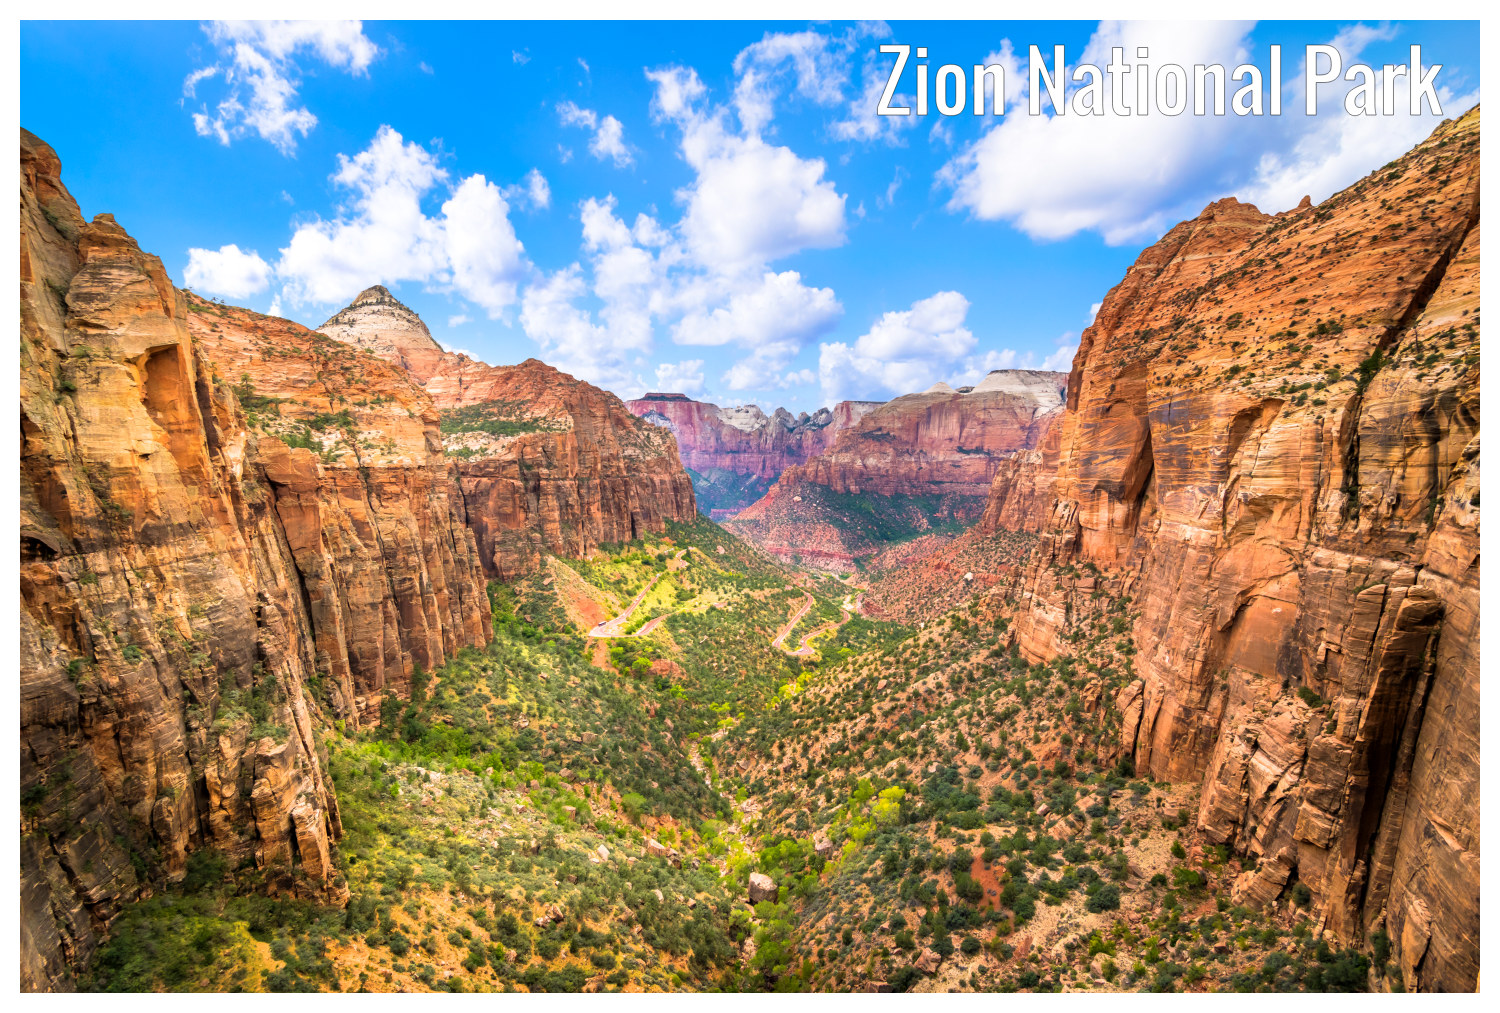 Zion National Park Ut Detailed Climate Information And